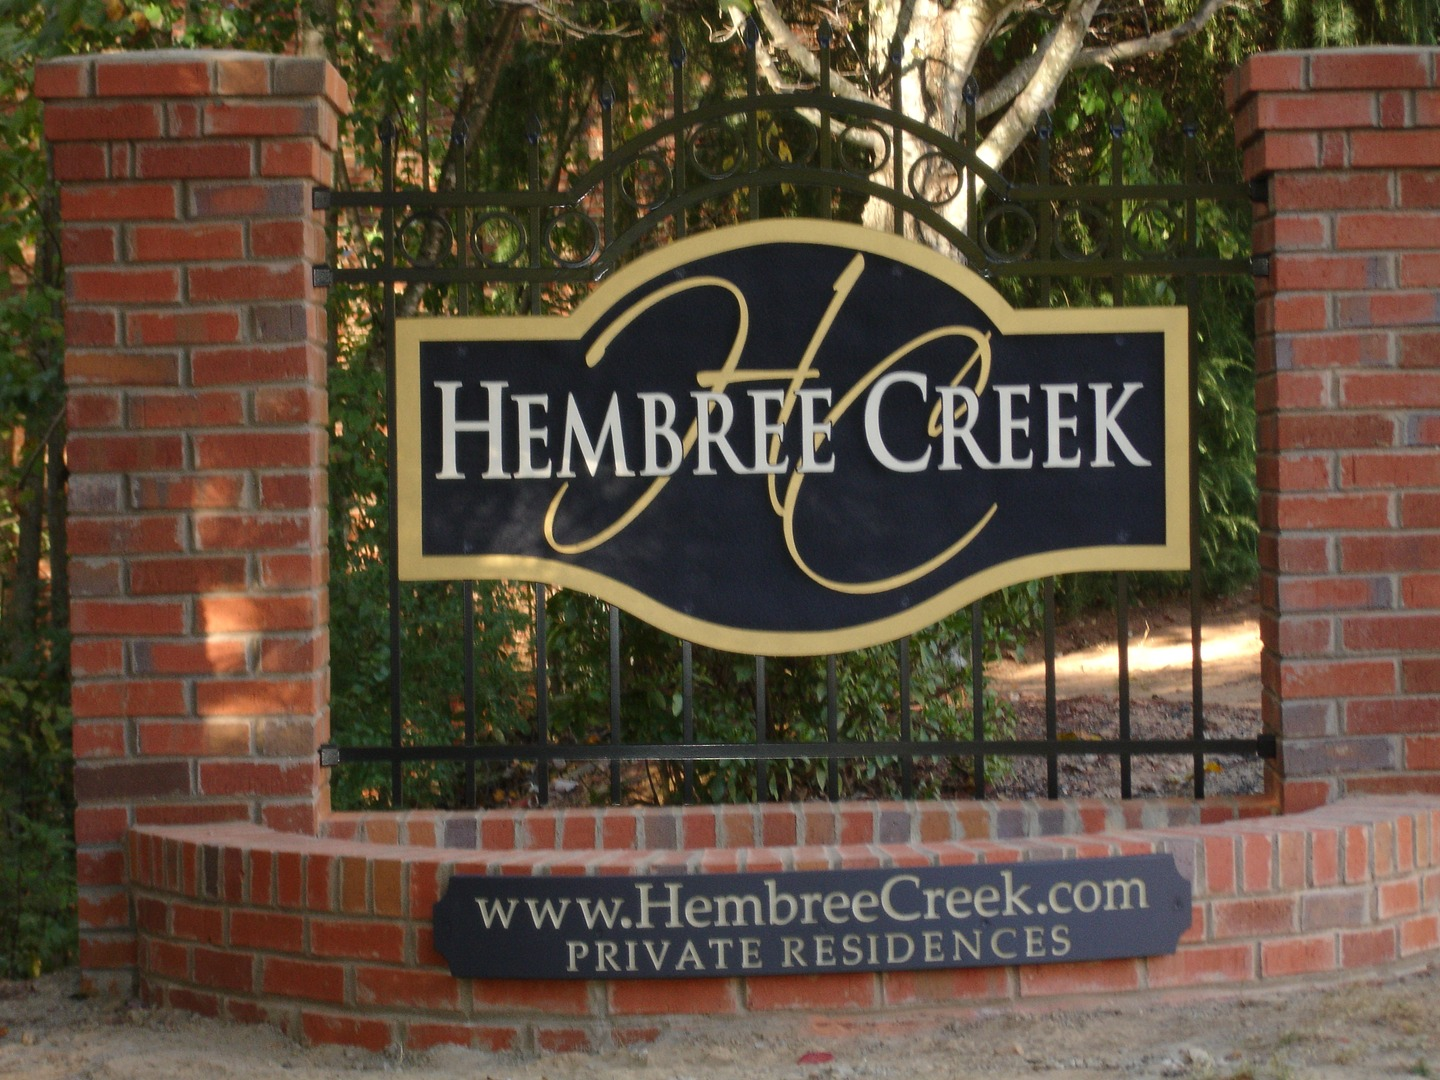 Hembree Creek.jpg